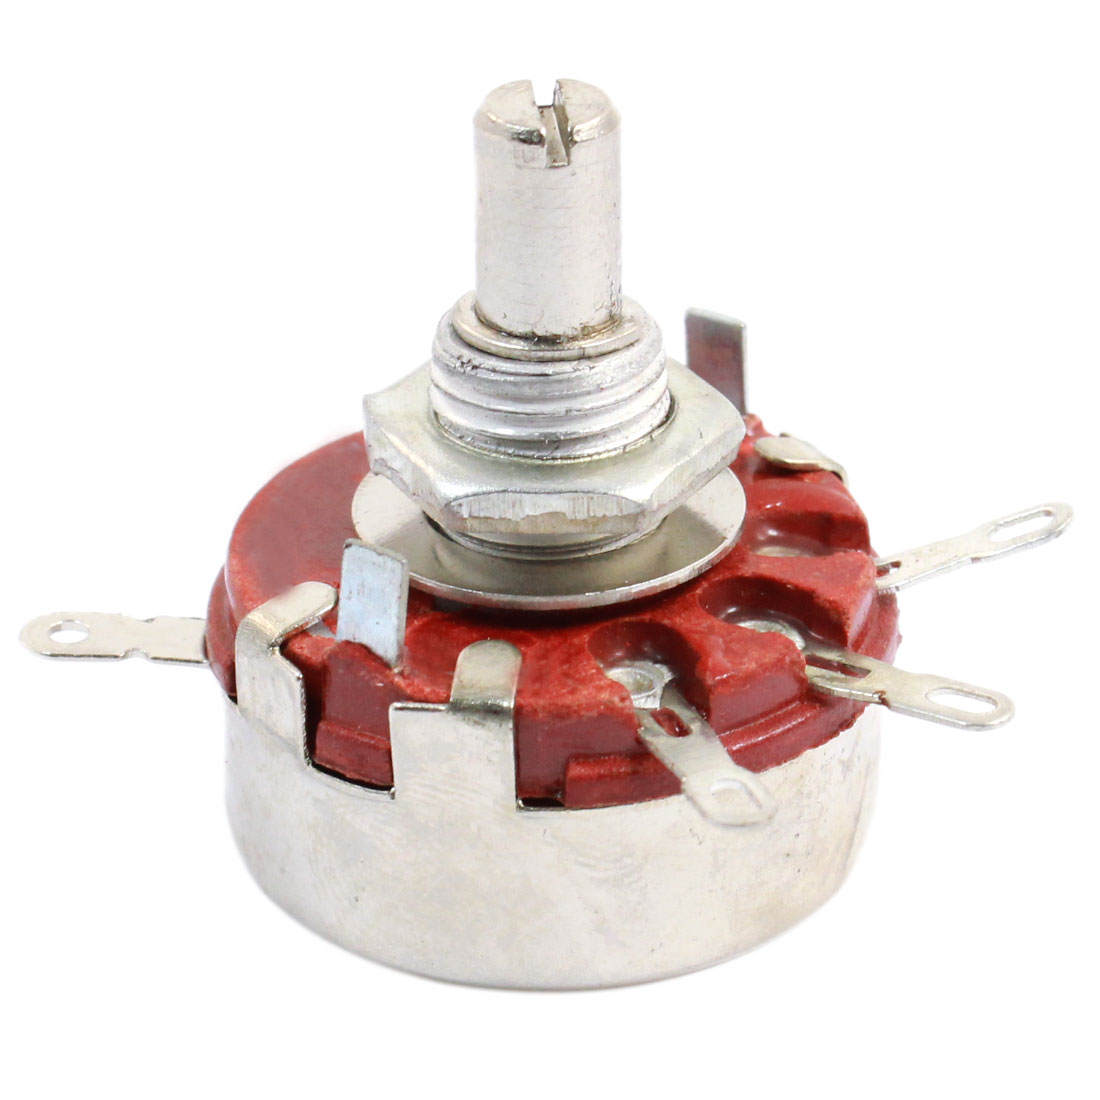 WTH118 2.2K ohm 2W Watt 6mm Round Shaft 4 Pins Carbon Rotary Potentiometer